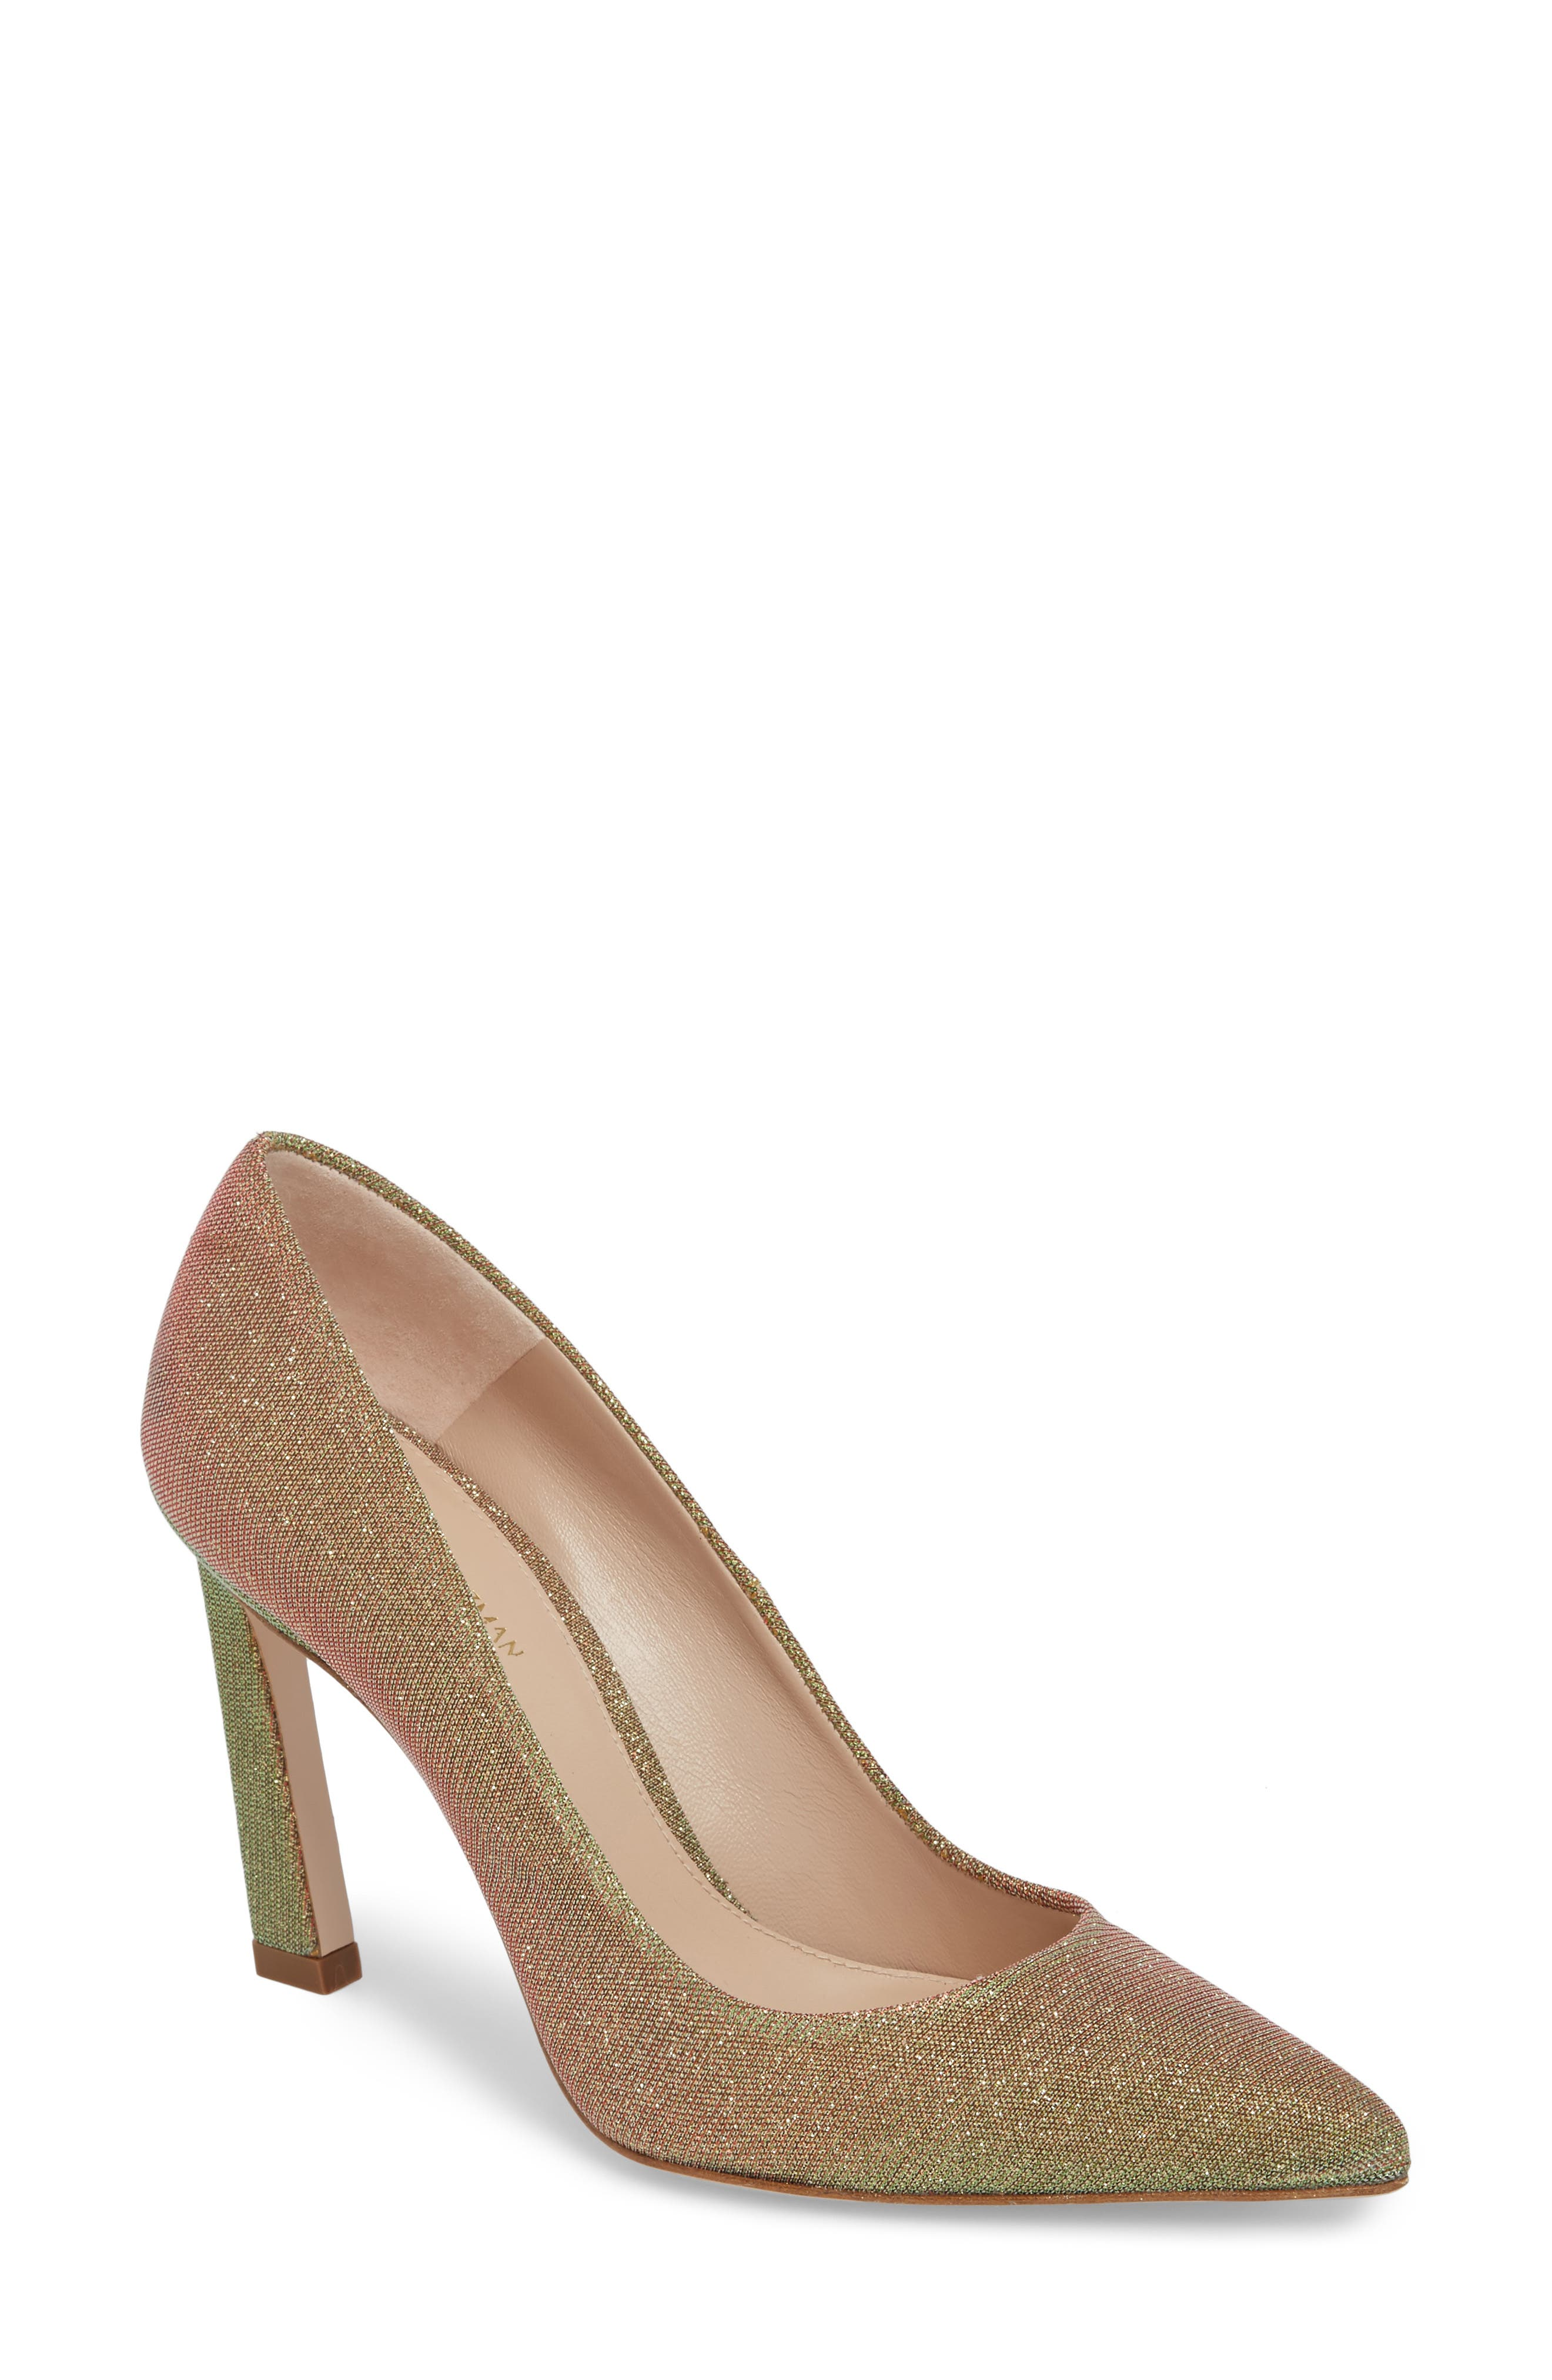 Chicster Pointy Toe Pump,                         Main,                         color, Gold Multi Nighttime